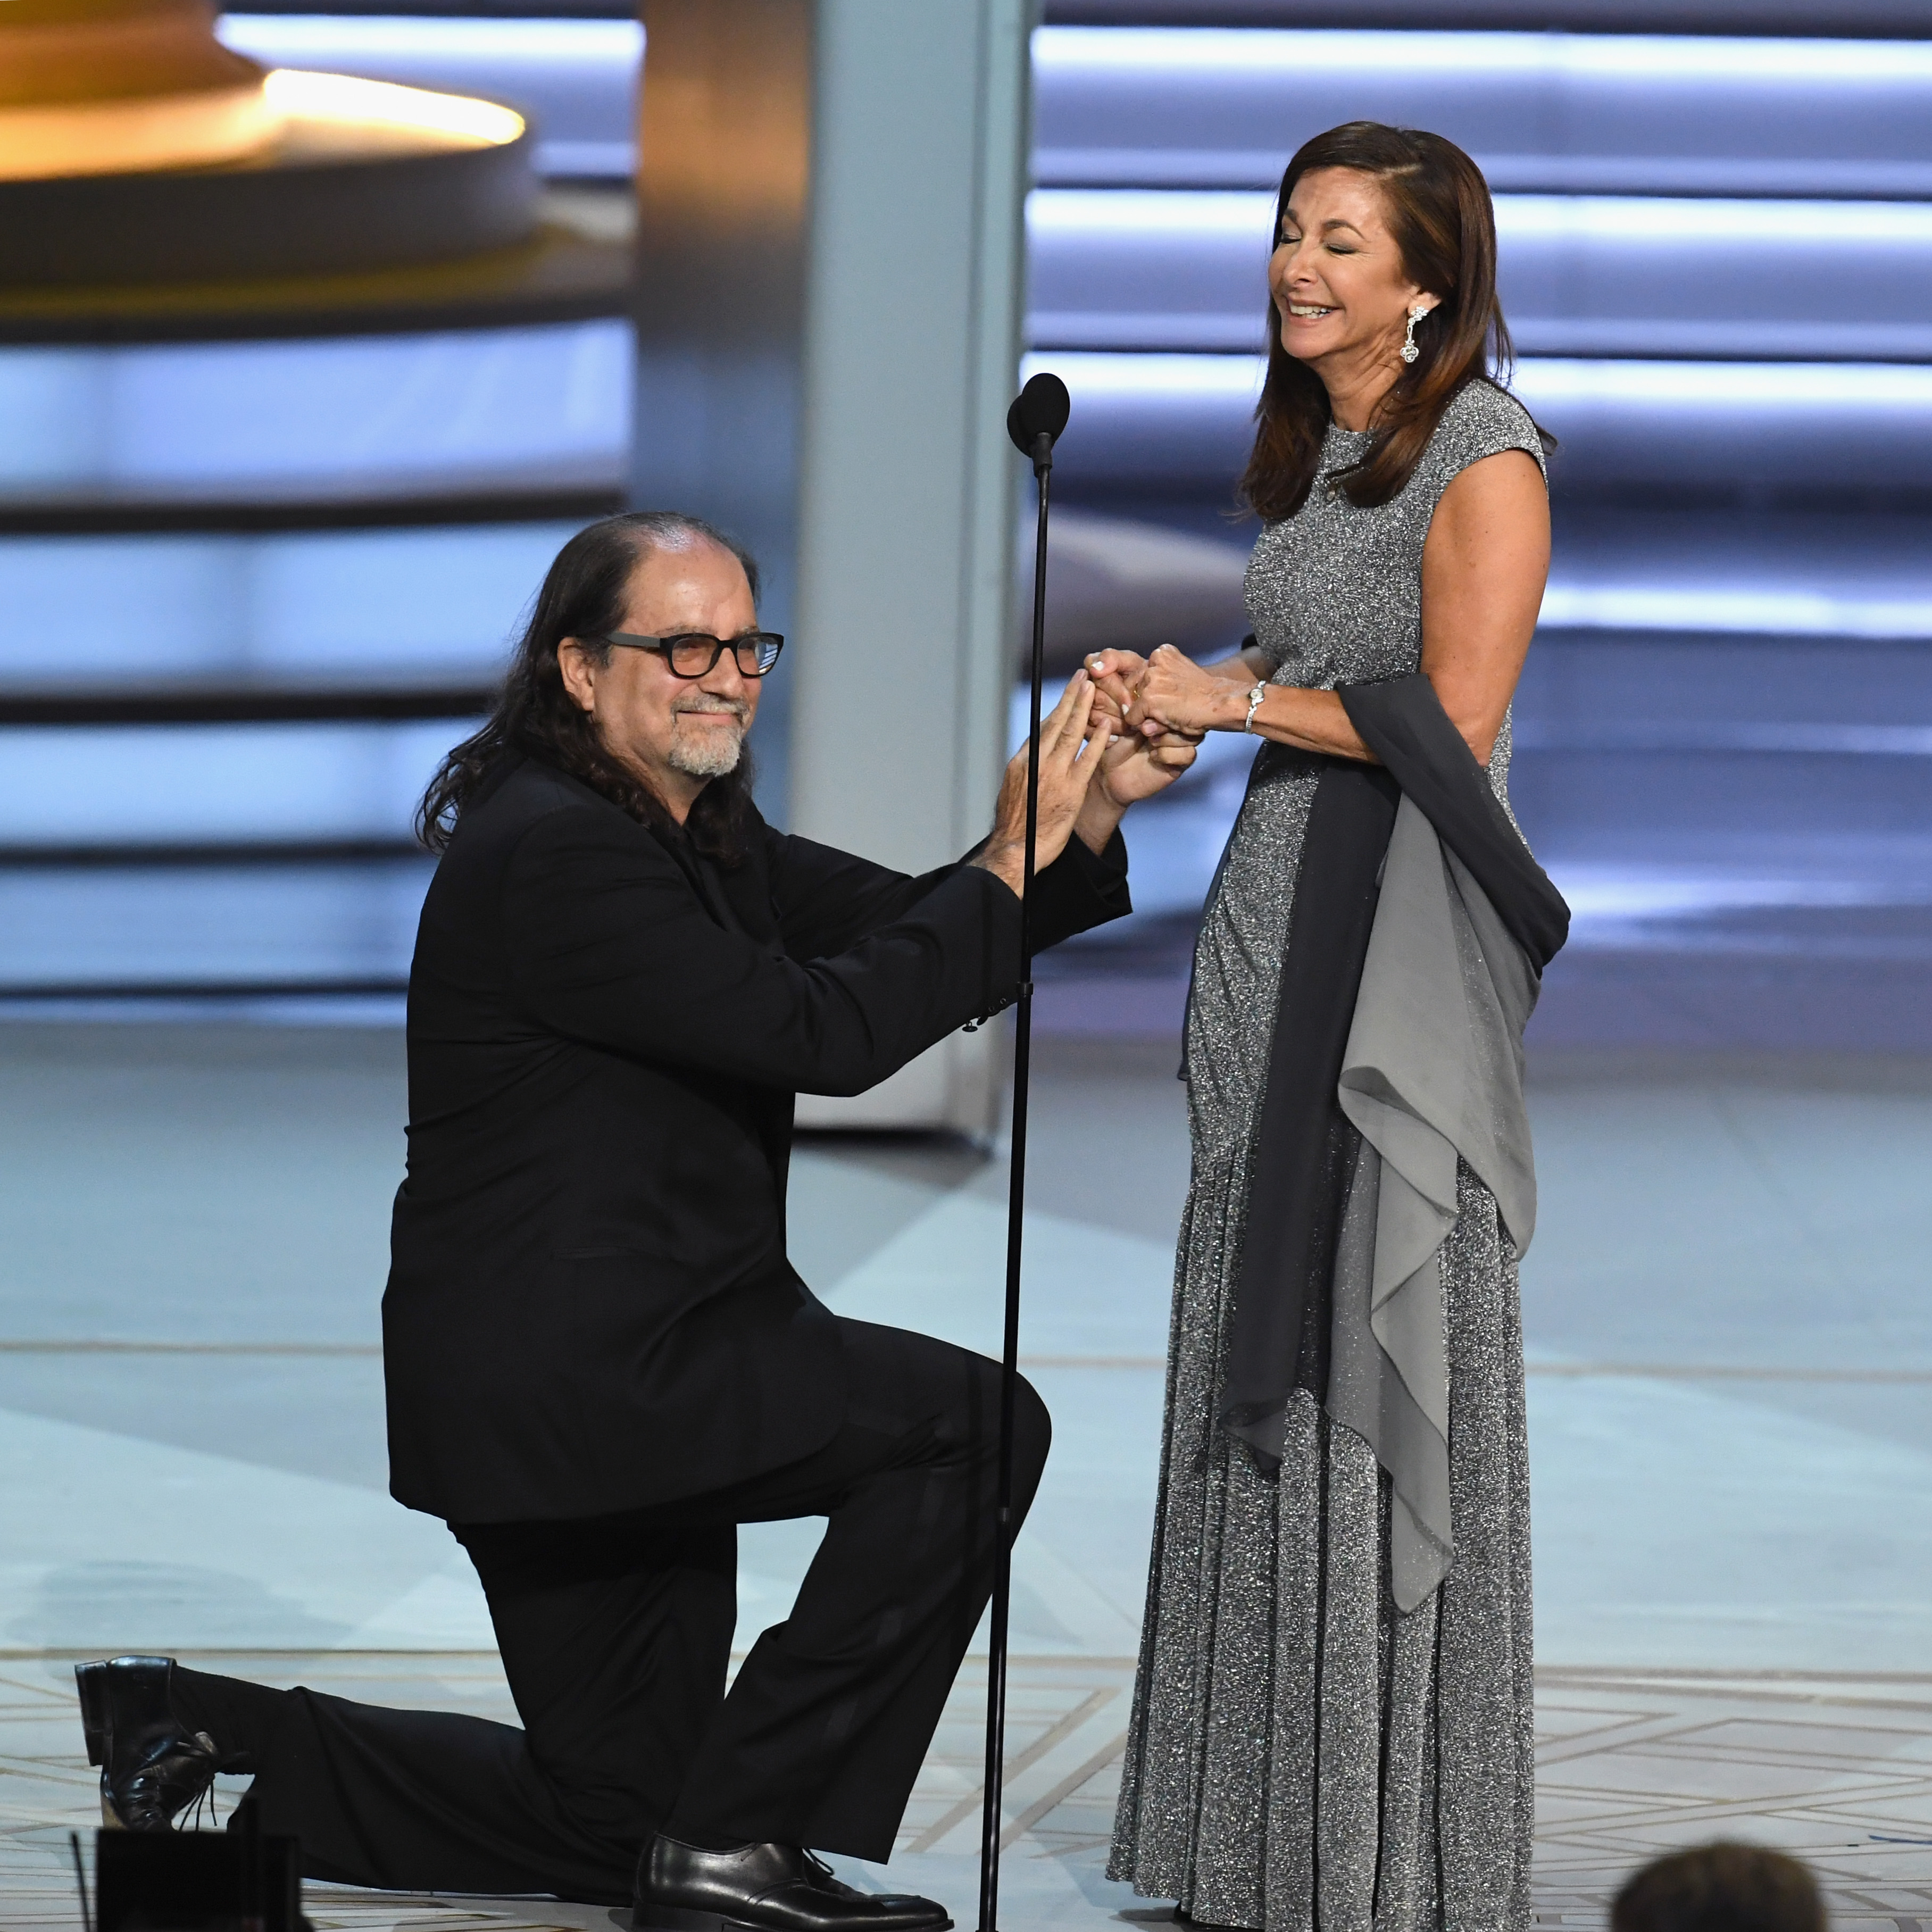 Glenn Weiss (L), winner of the Outstanding Directing for a Variety Special award for 'The Oscars,' proposes marriage to Jan Svendsen during the 70th Emmy Awards at Microsoft Theater on September 17, 2018 in Los Angeles, California. (Photo by Kevin Winter/Getty Images)